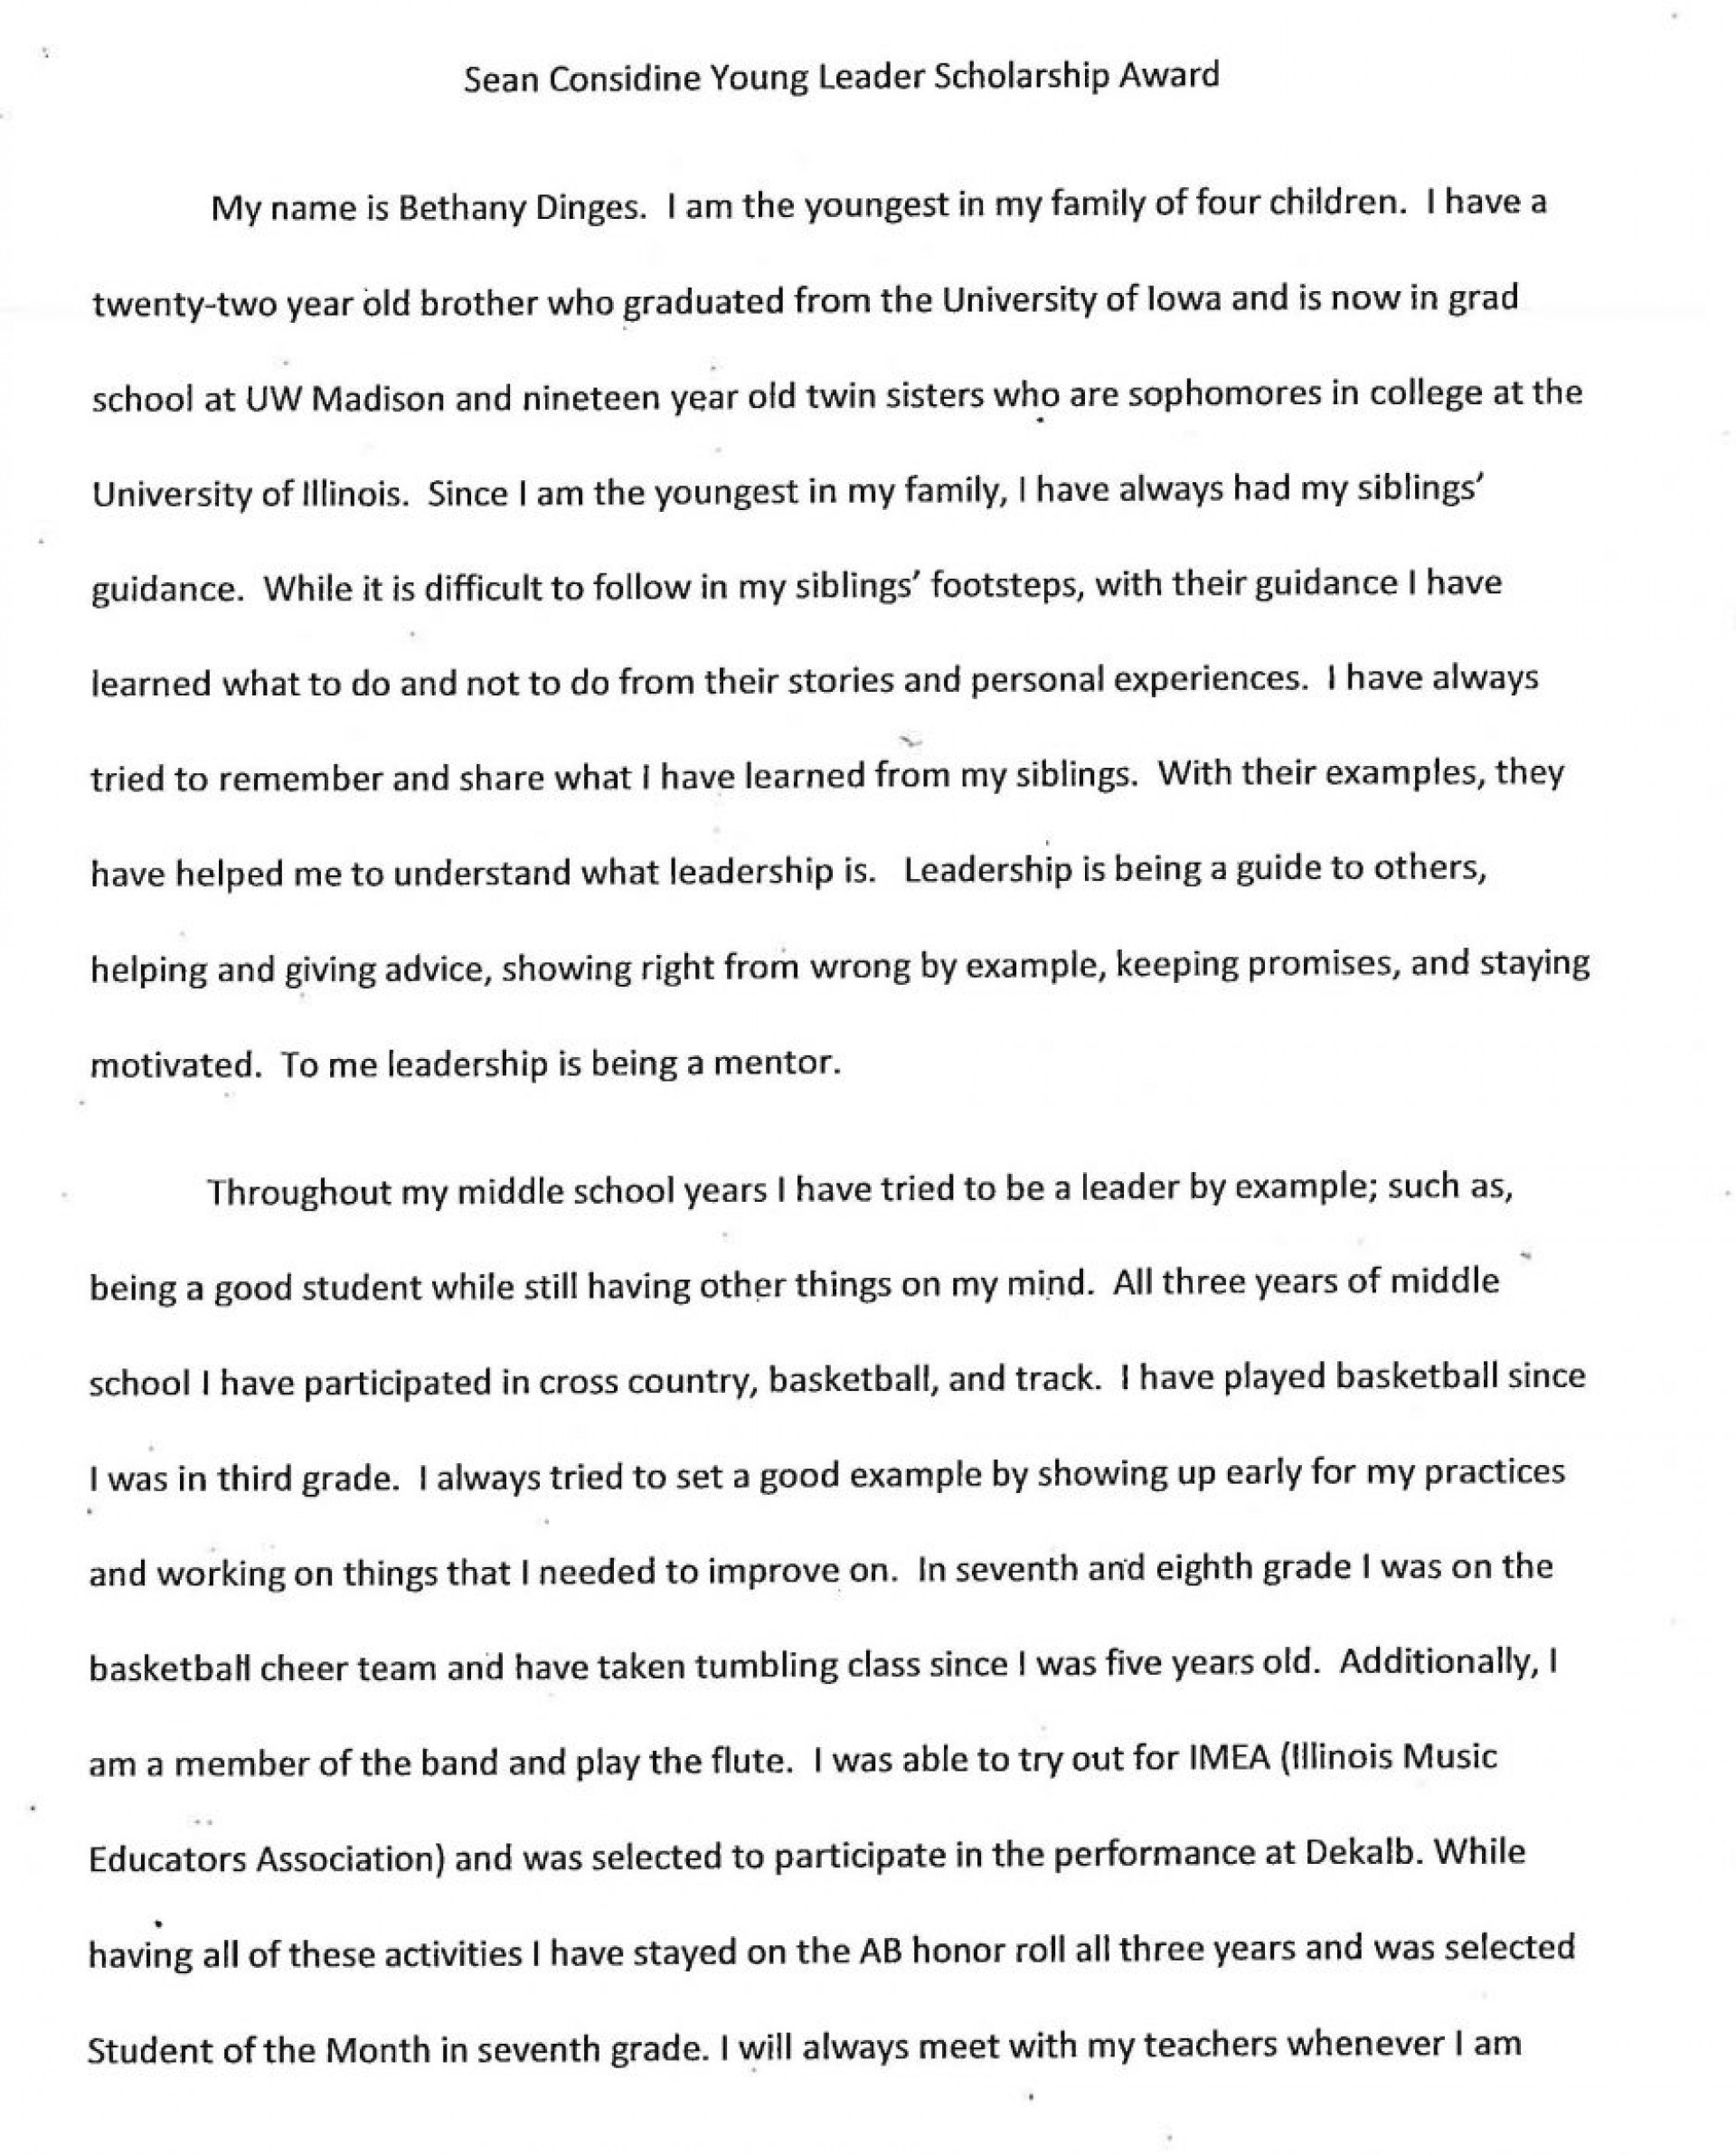 007 Studentuncil Essay Ideas Bethanyletter Page For Treasurer Elections Good Elementary School Election Goals President Examples Writing An Sample Persuasive 3rd Graders Secretary 936x1162 Phenomenal Student Council Template 5th Grade College 1920